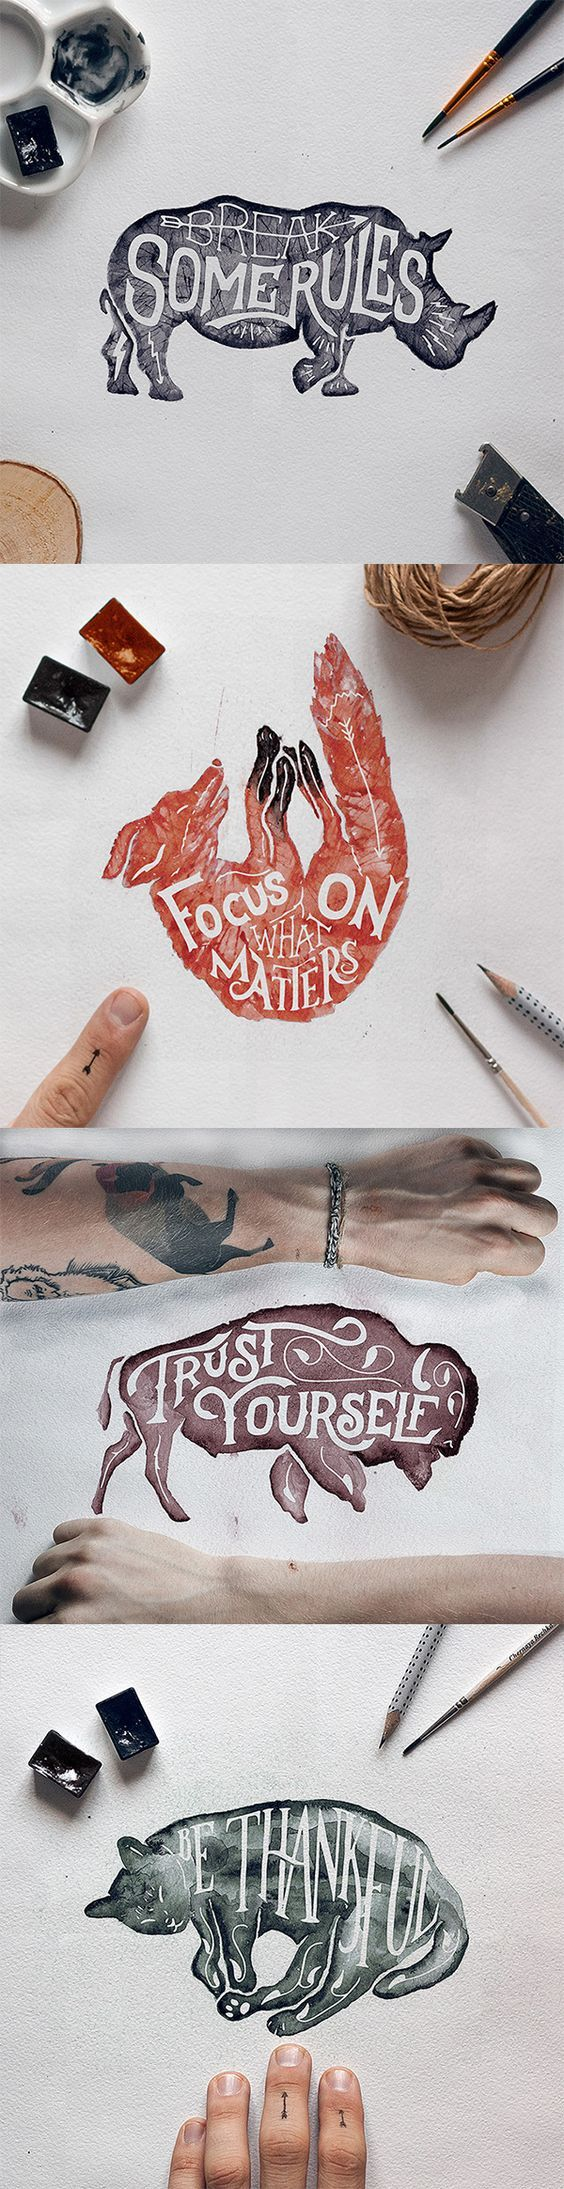 Gosha Bondarev of Saint Petersburg, Russian Federation, has a few phrases that he uses as his Rules of Success. In fact, that's the name of his latest series on Behance. Made using various mediums — pencils, ink and brushes — these animal illustrations are encouraging rules to live by.